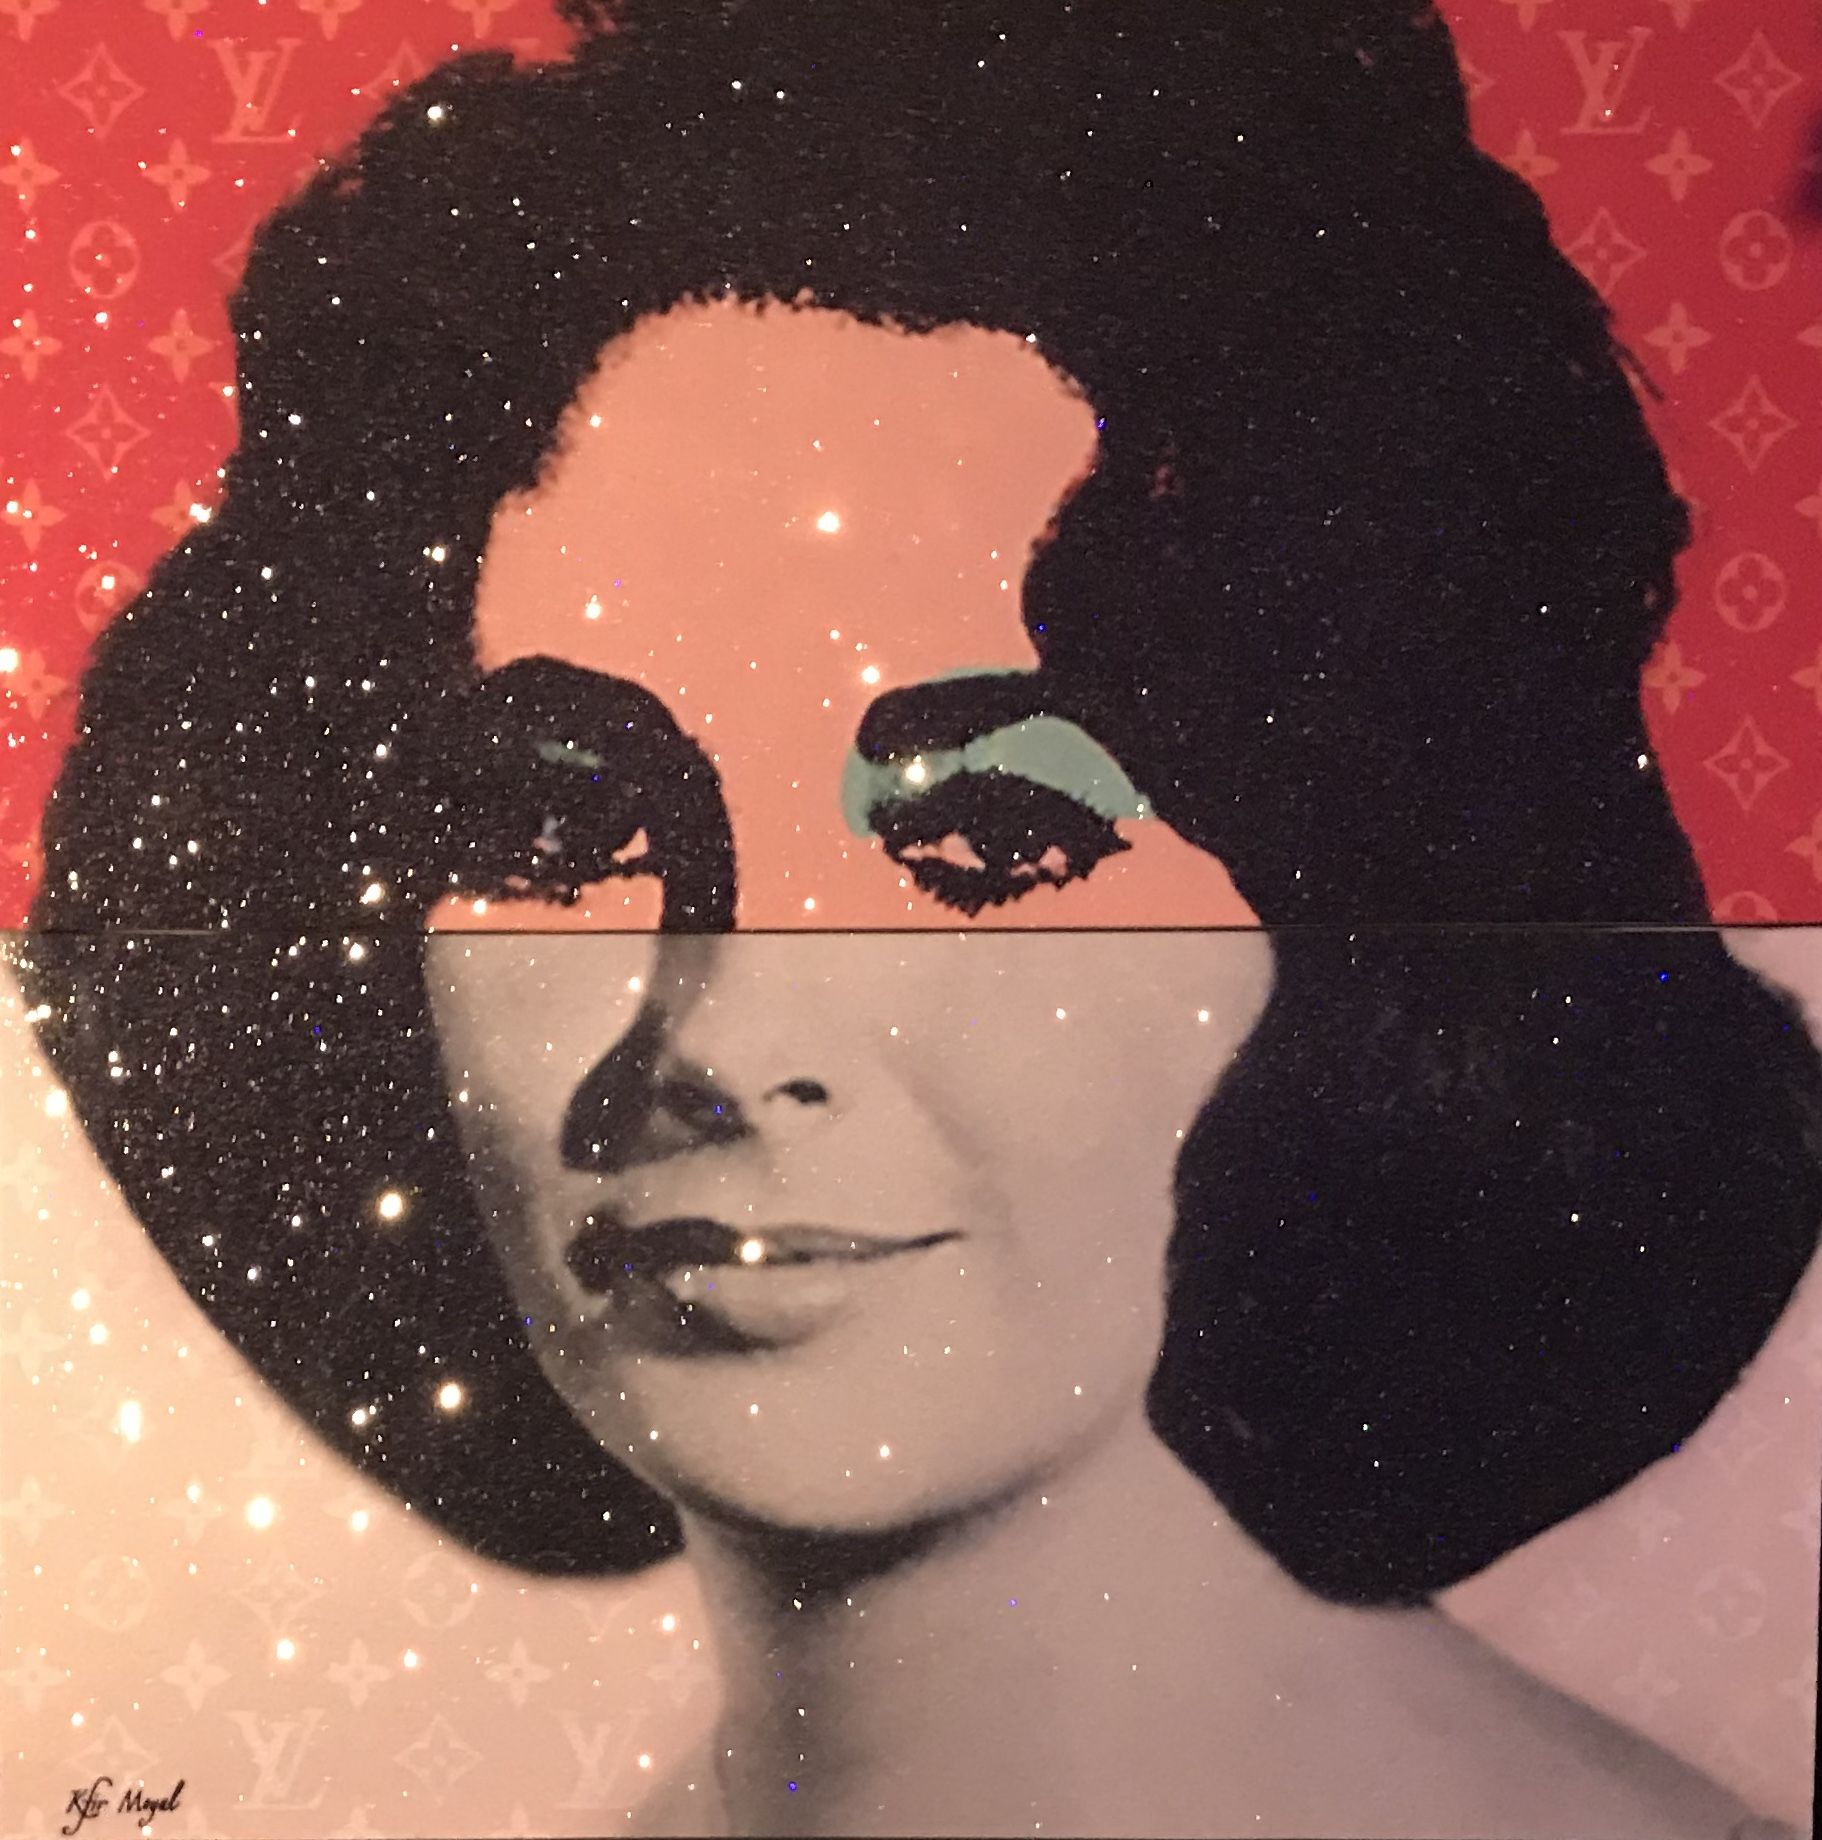 Kfir Moyal - Iconic Elizabeth Taylor, 2018; Limited edition mixed media silkscreen on canvas, diamond dust, and hand-embellished Swarovski crystals; Off The Wall Gallery Houston.